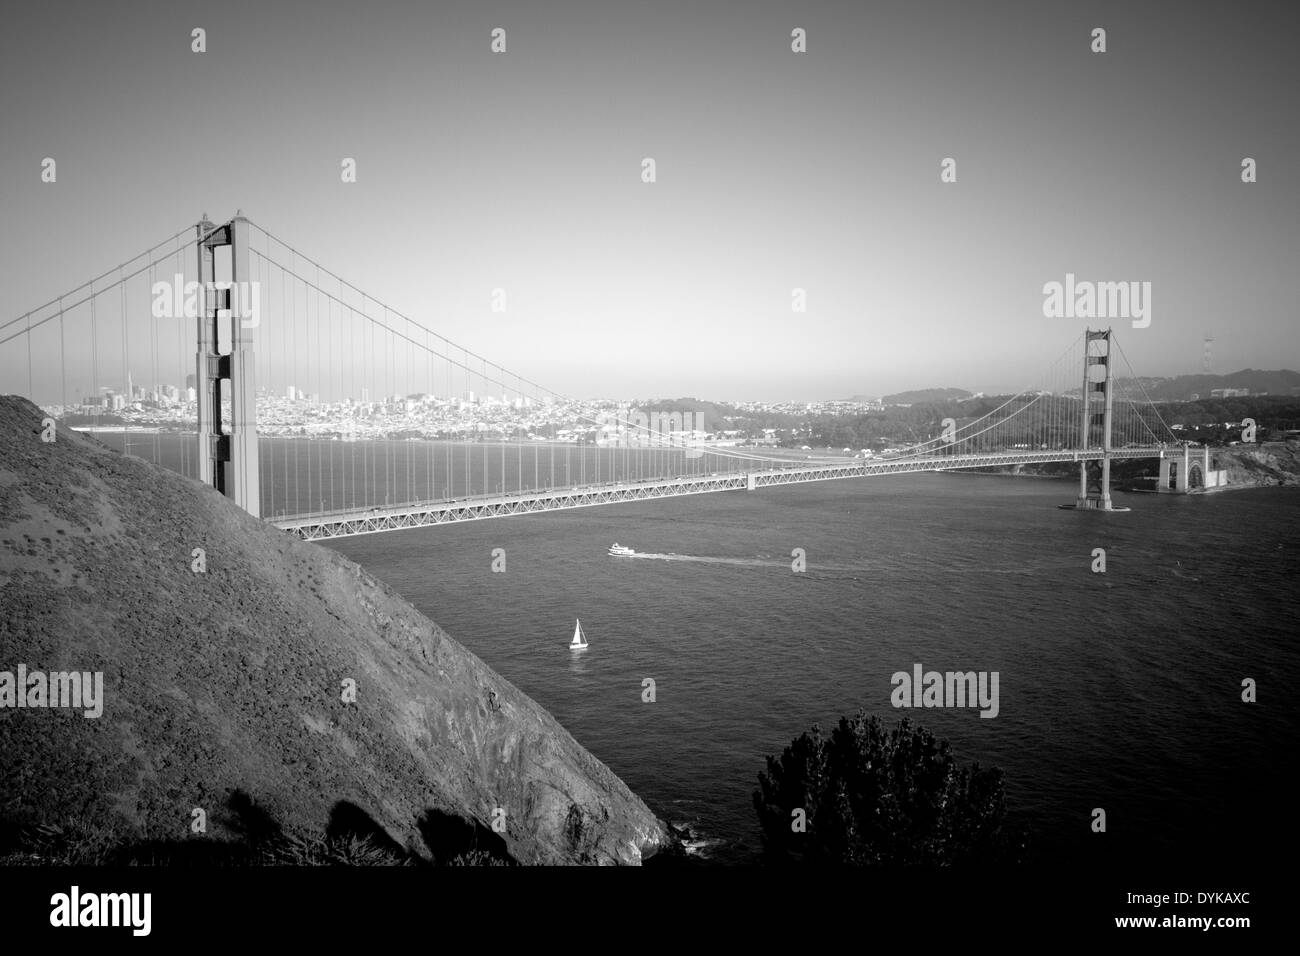 A Black And White Aerial View Of The Golden Gate Bridge As